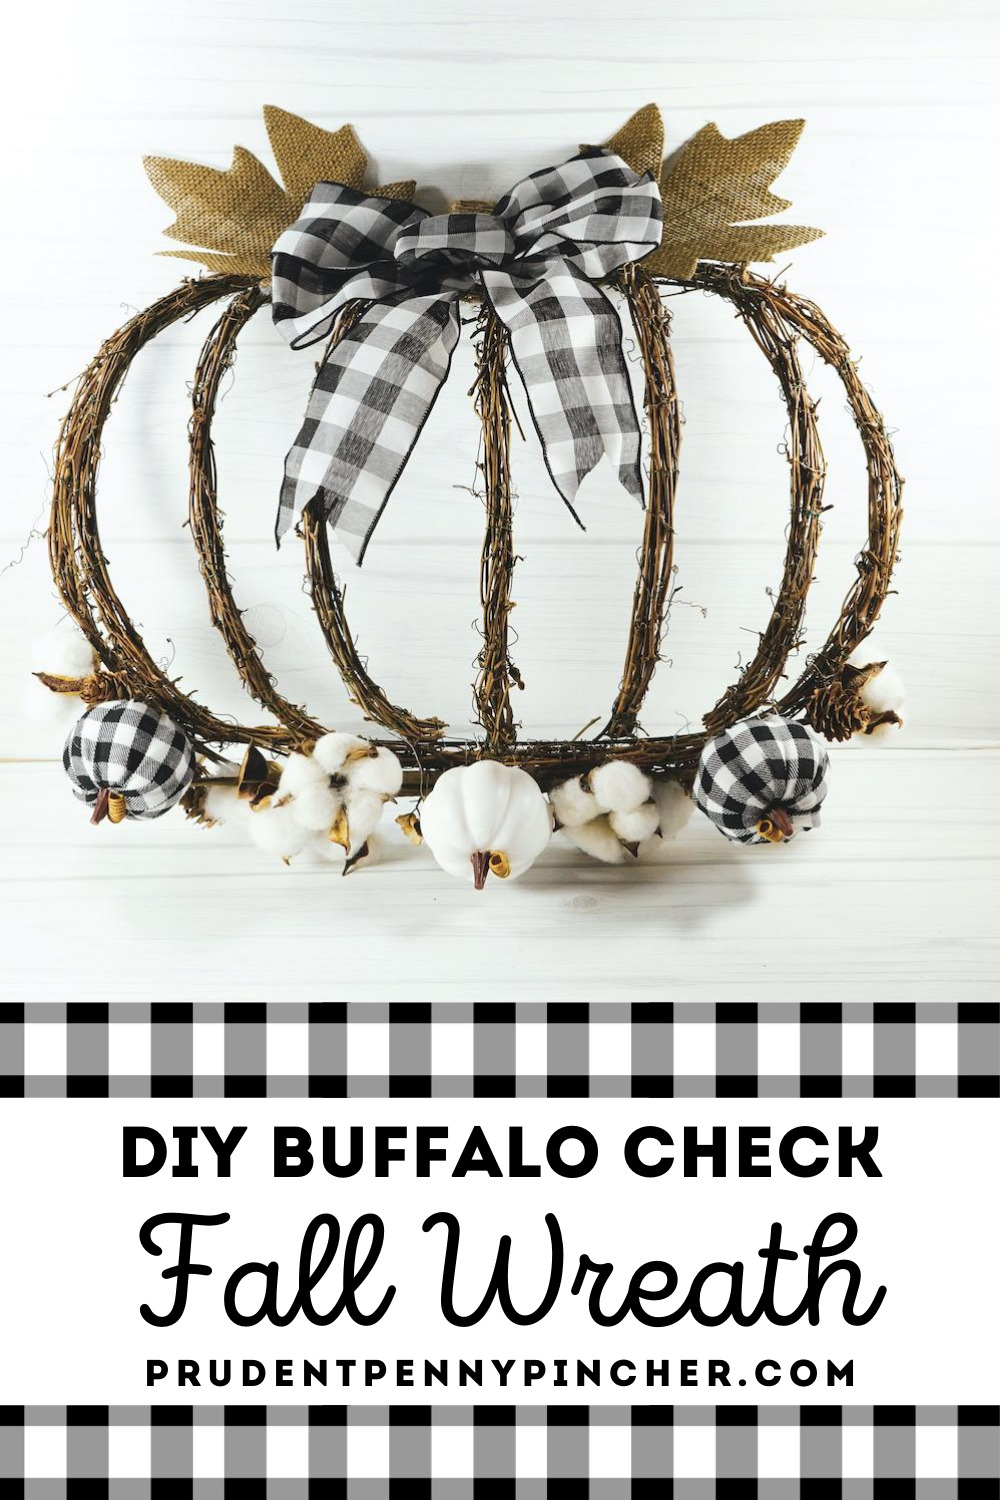 Diy Buffalo Check Pumpkin Fall Wreath Prudent Penny Pincher